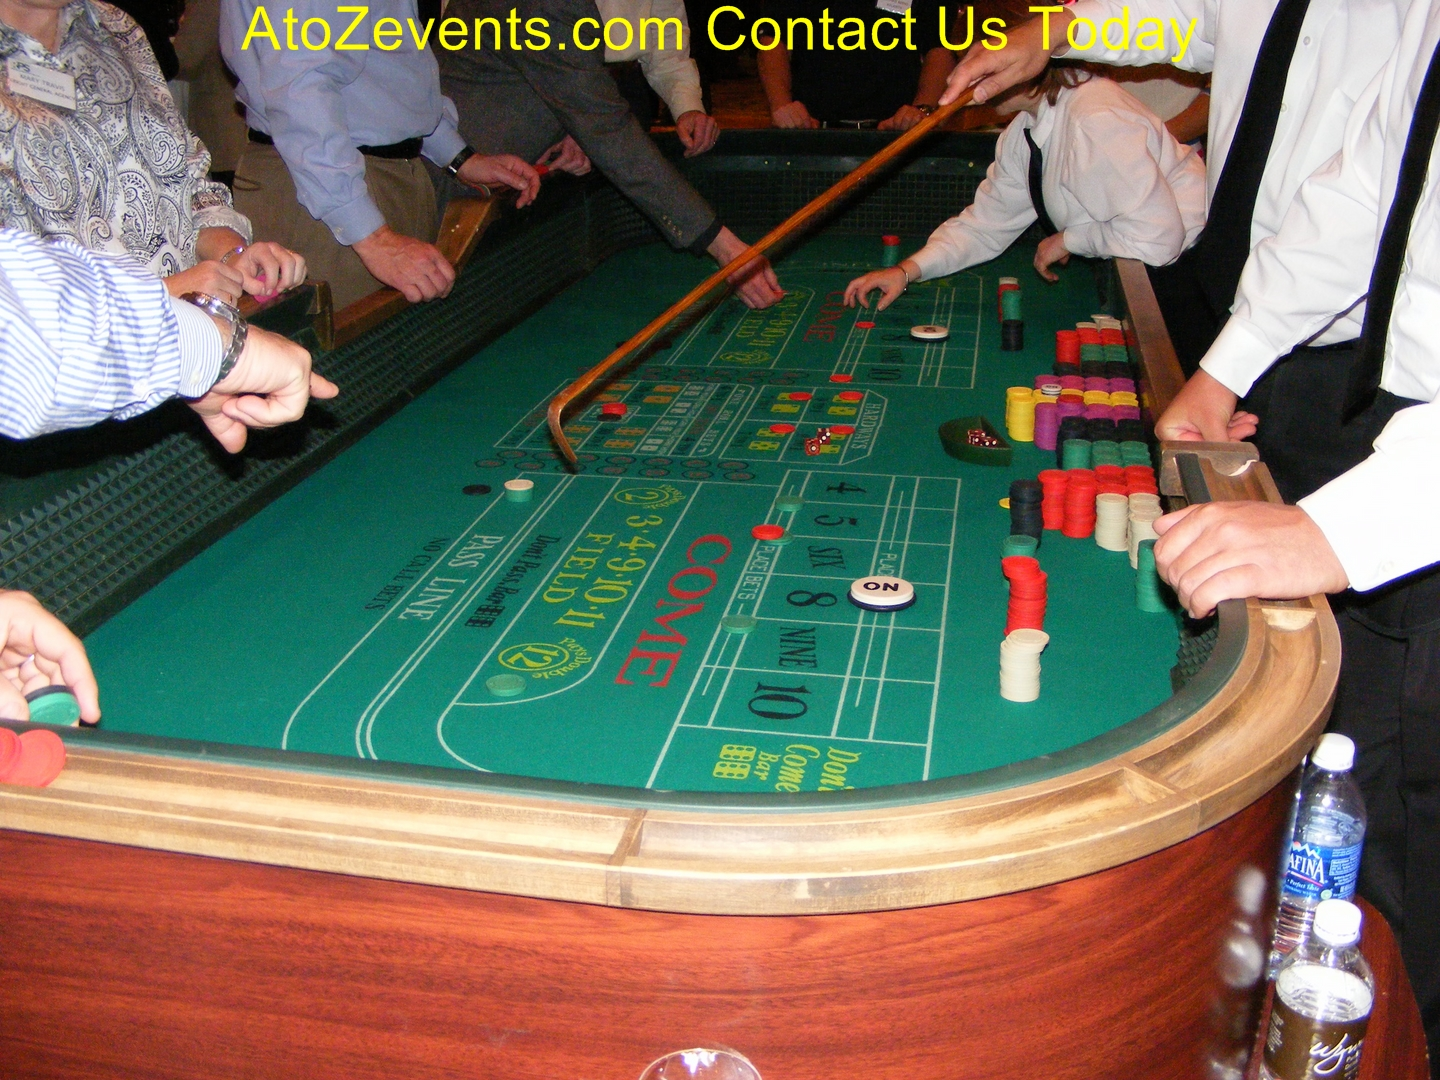 Casino games rental free casino party invitations a full line of professional grade casino equipment for all types of event rentals with expertly trained staff on siteour do it yourself events and many solutioingenieria Images